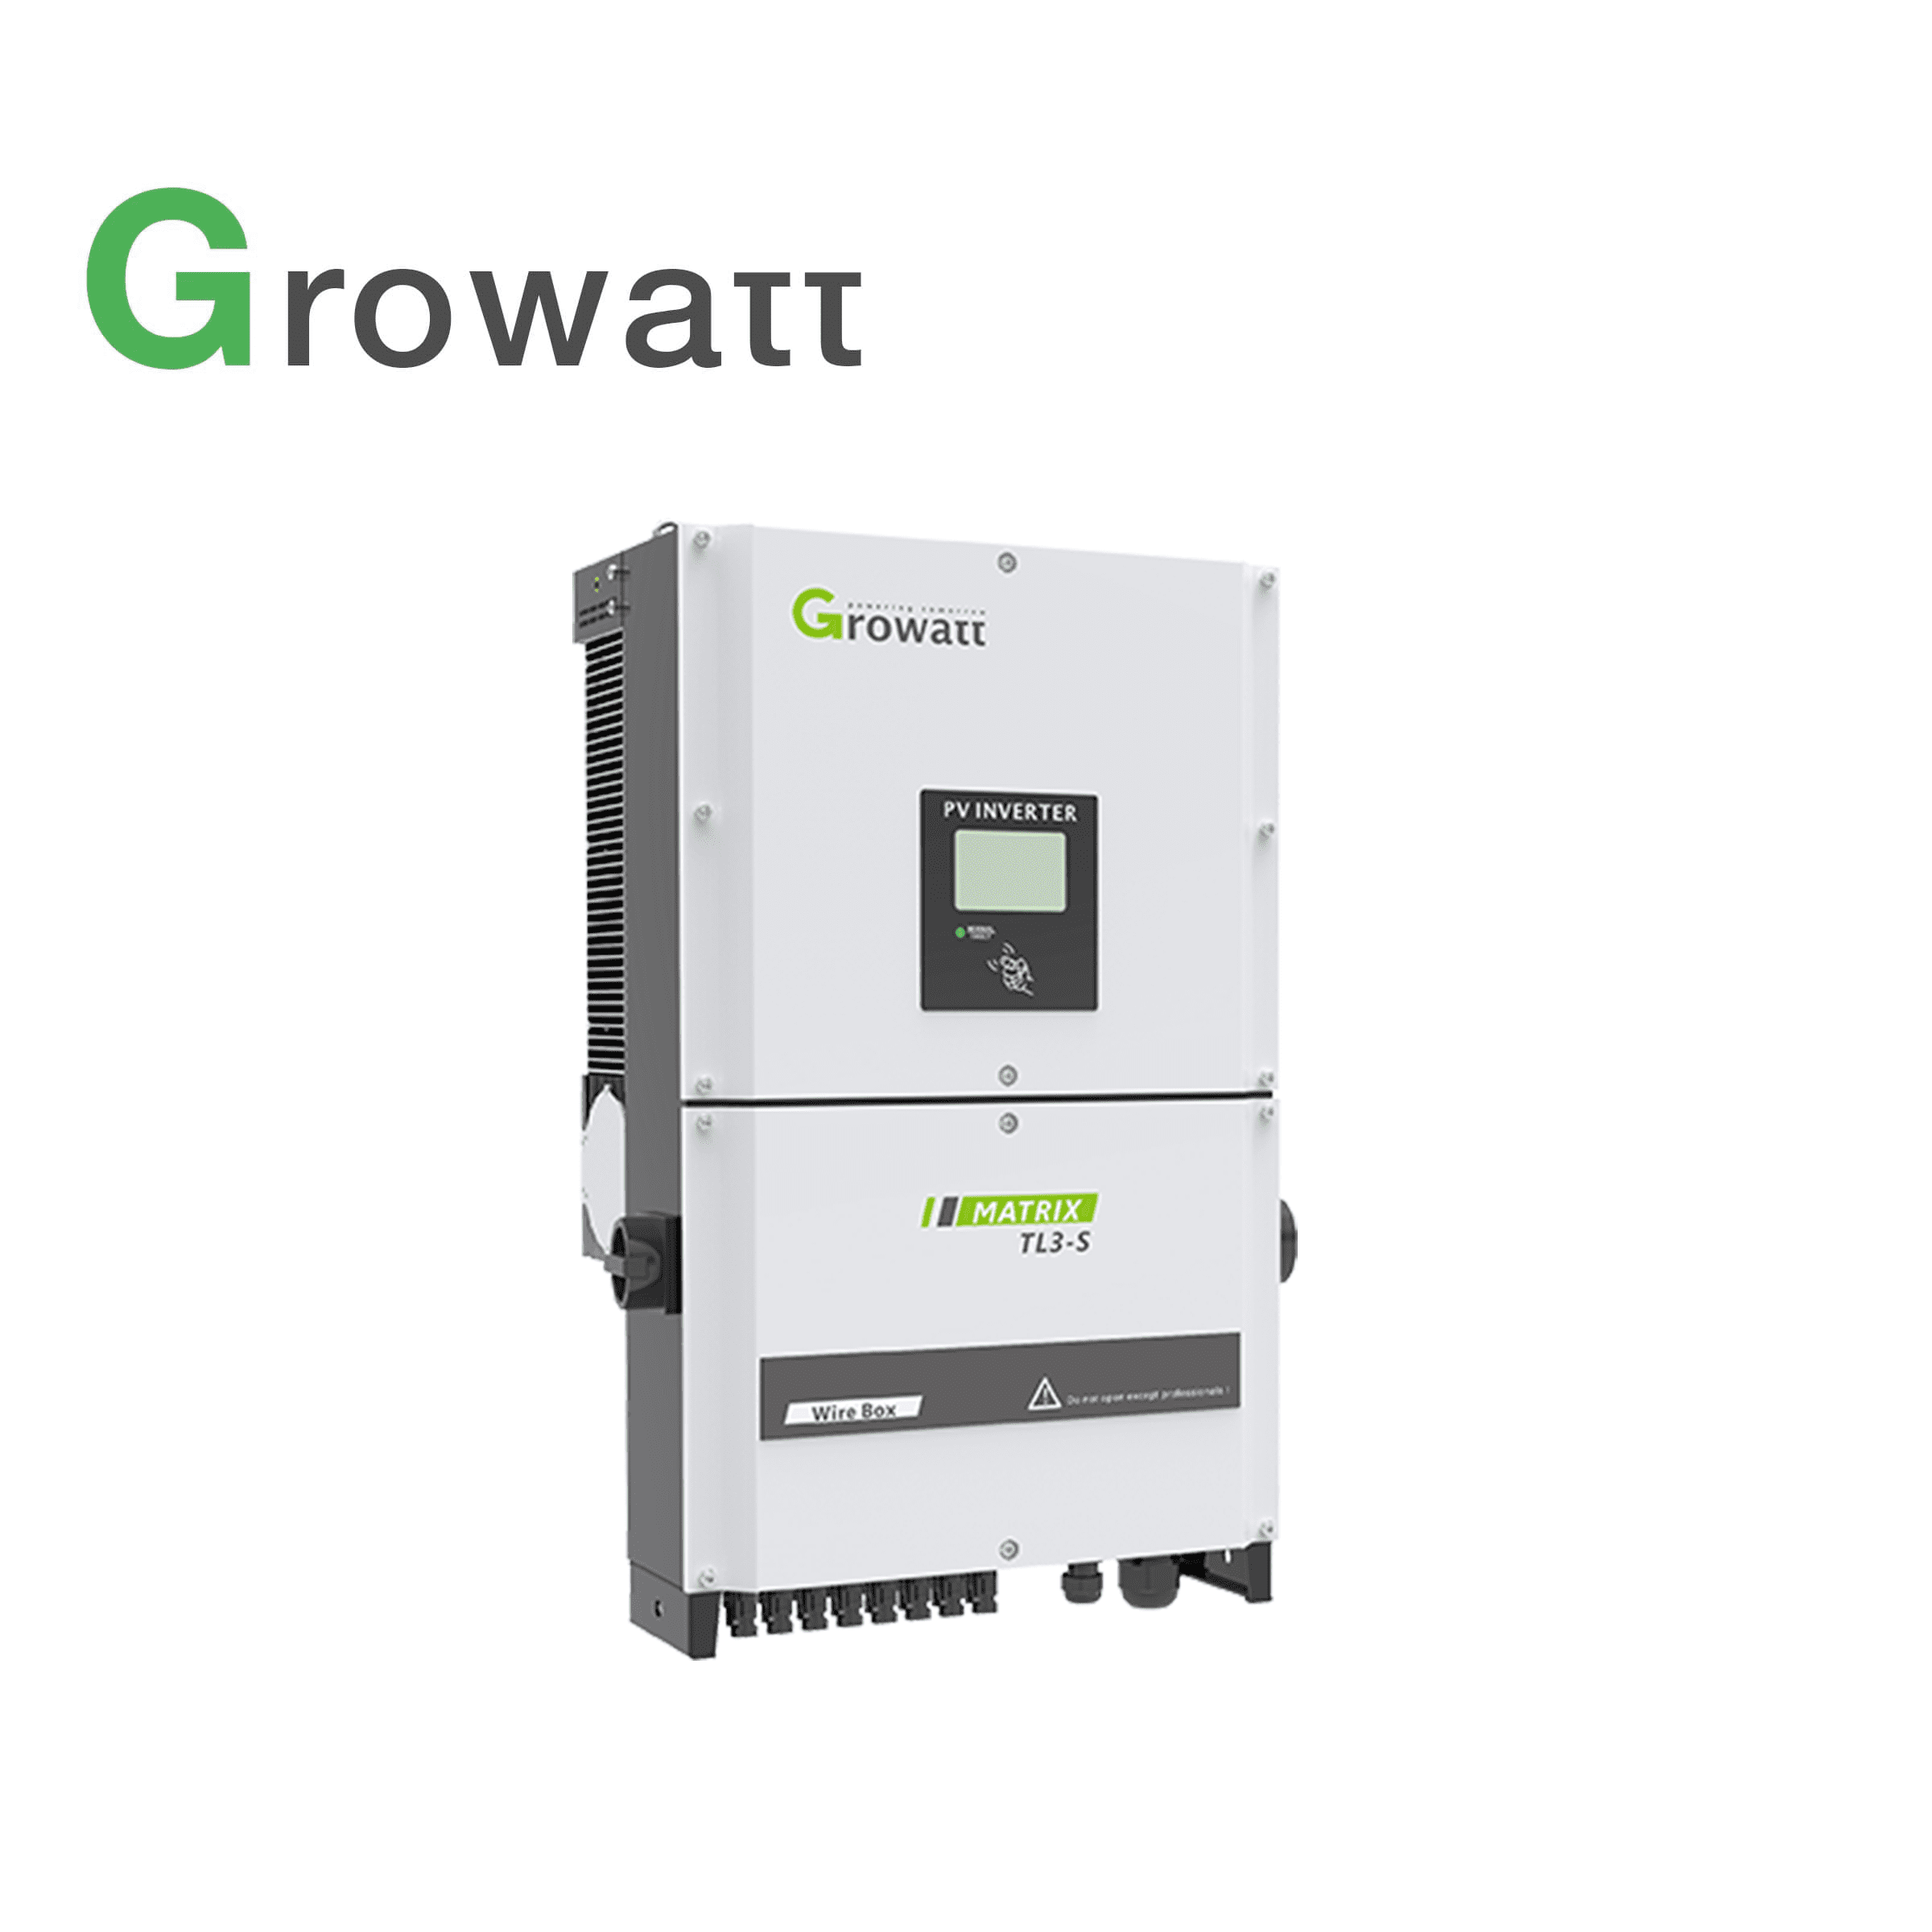 Growatt 30 Kilowatt 3 phase inverter